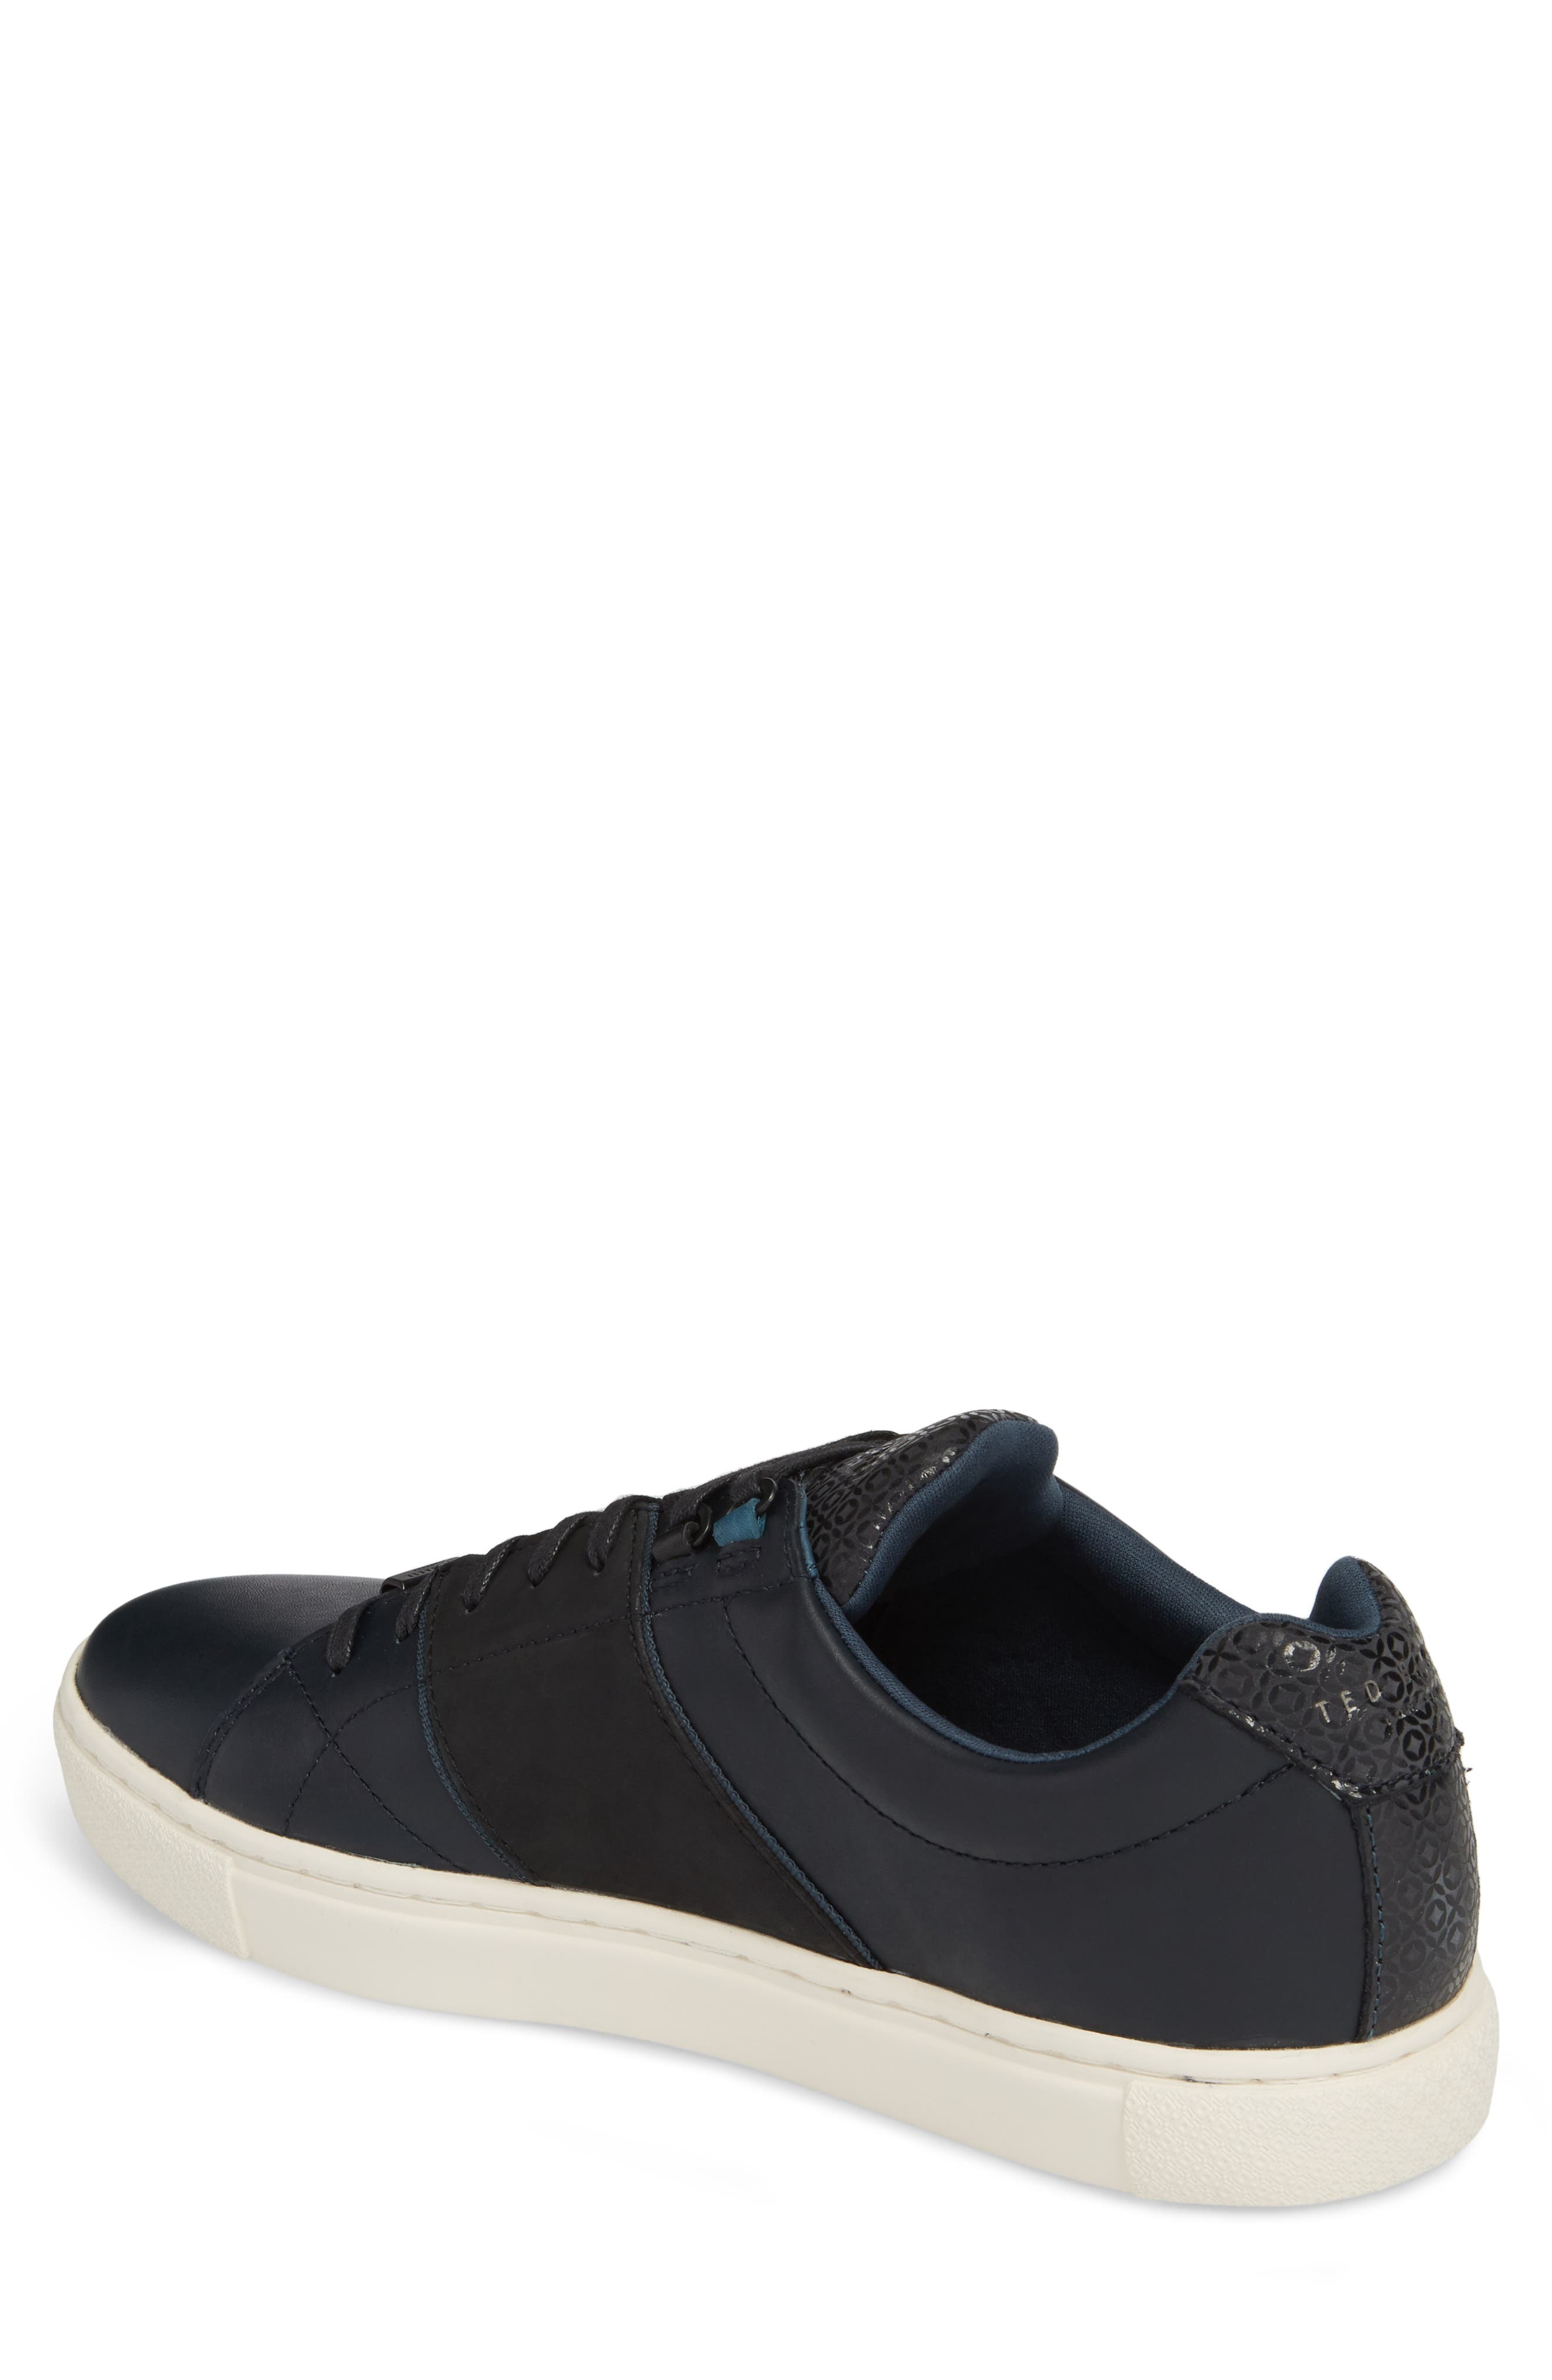 Ted Baker Quana Low Top Sneaker,                             Alternate thumbnail 2, color,                             Dark Blue Leather